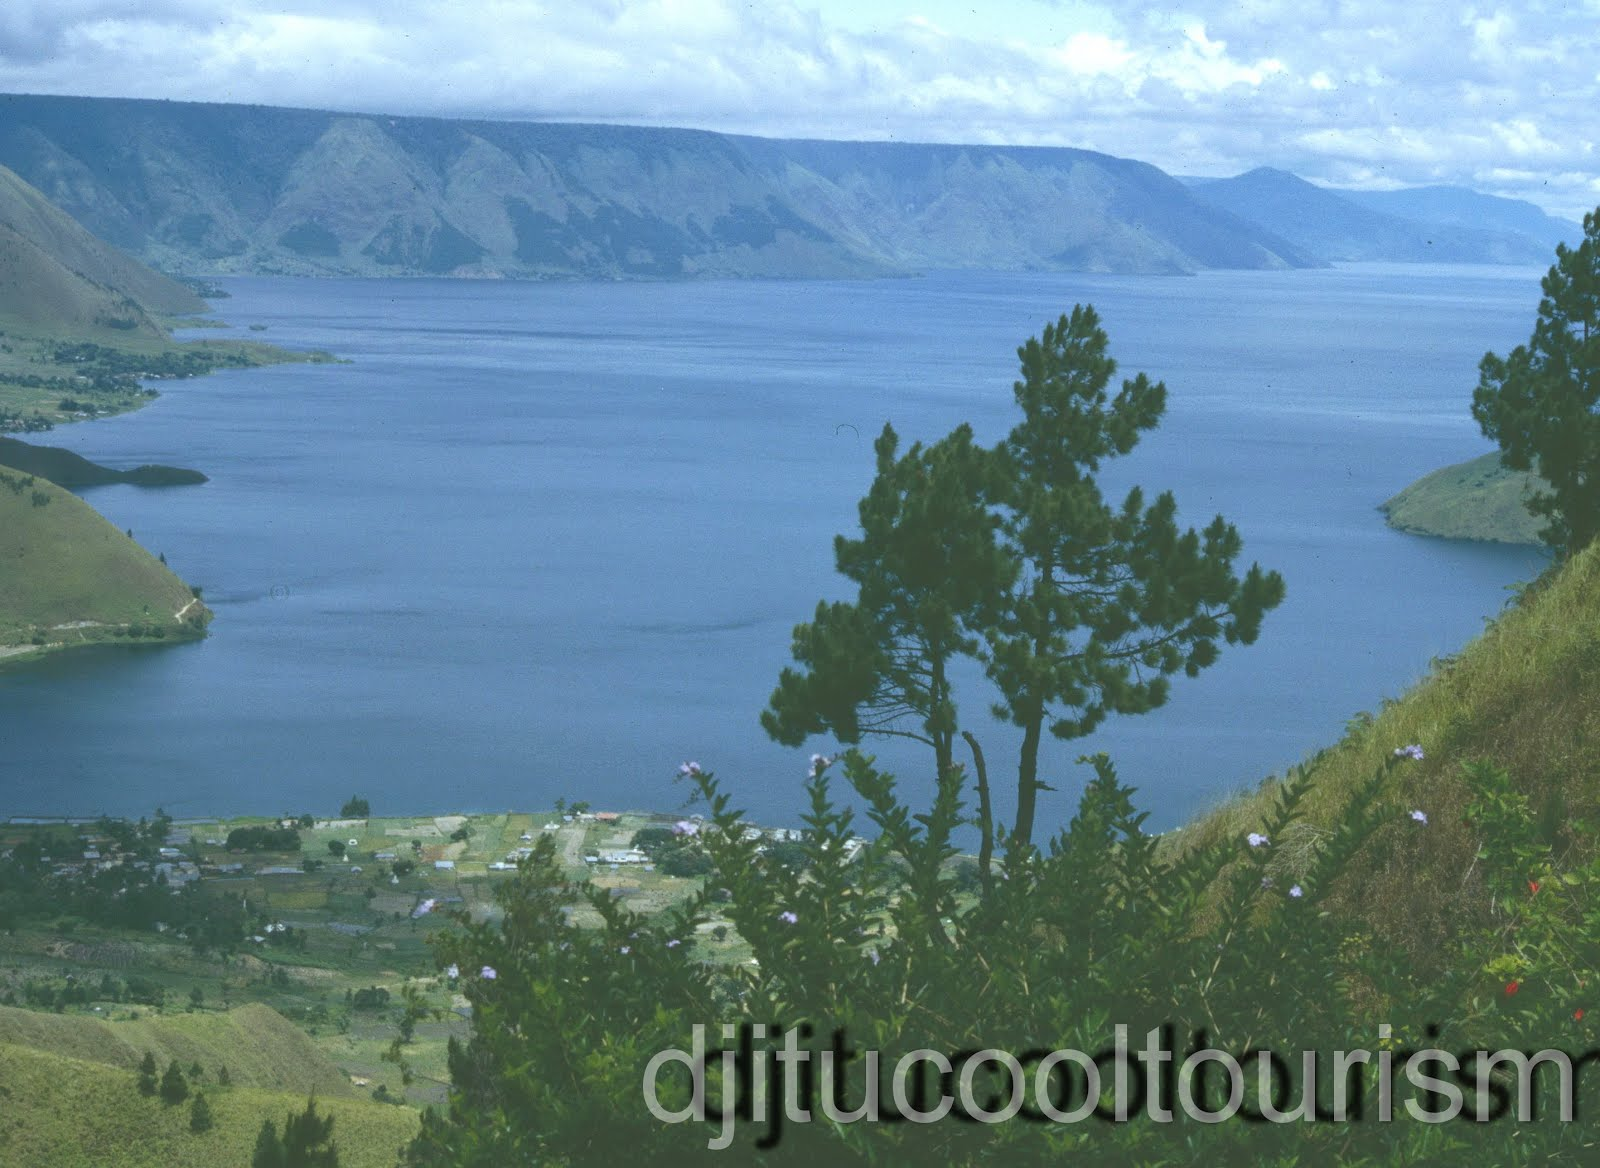 Nature Tourism Lake Toba Sumatera Utara Collection Sipinsur Kab Samosir